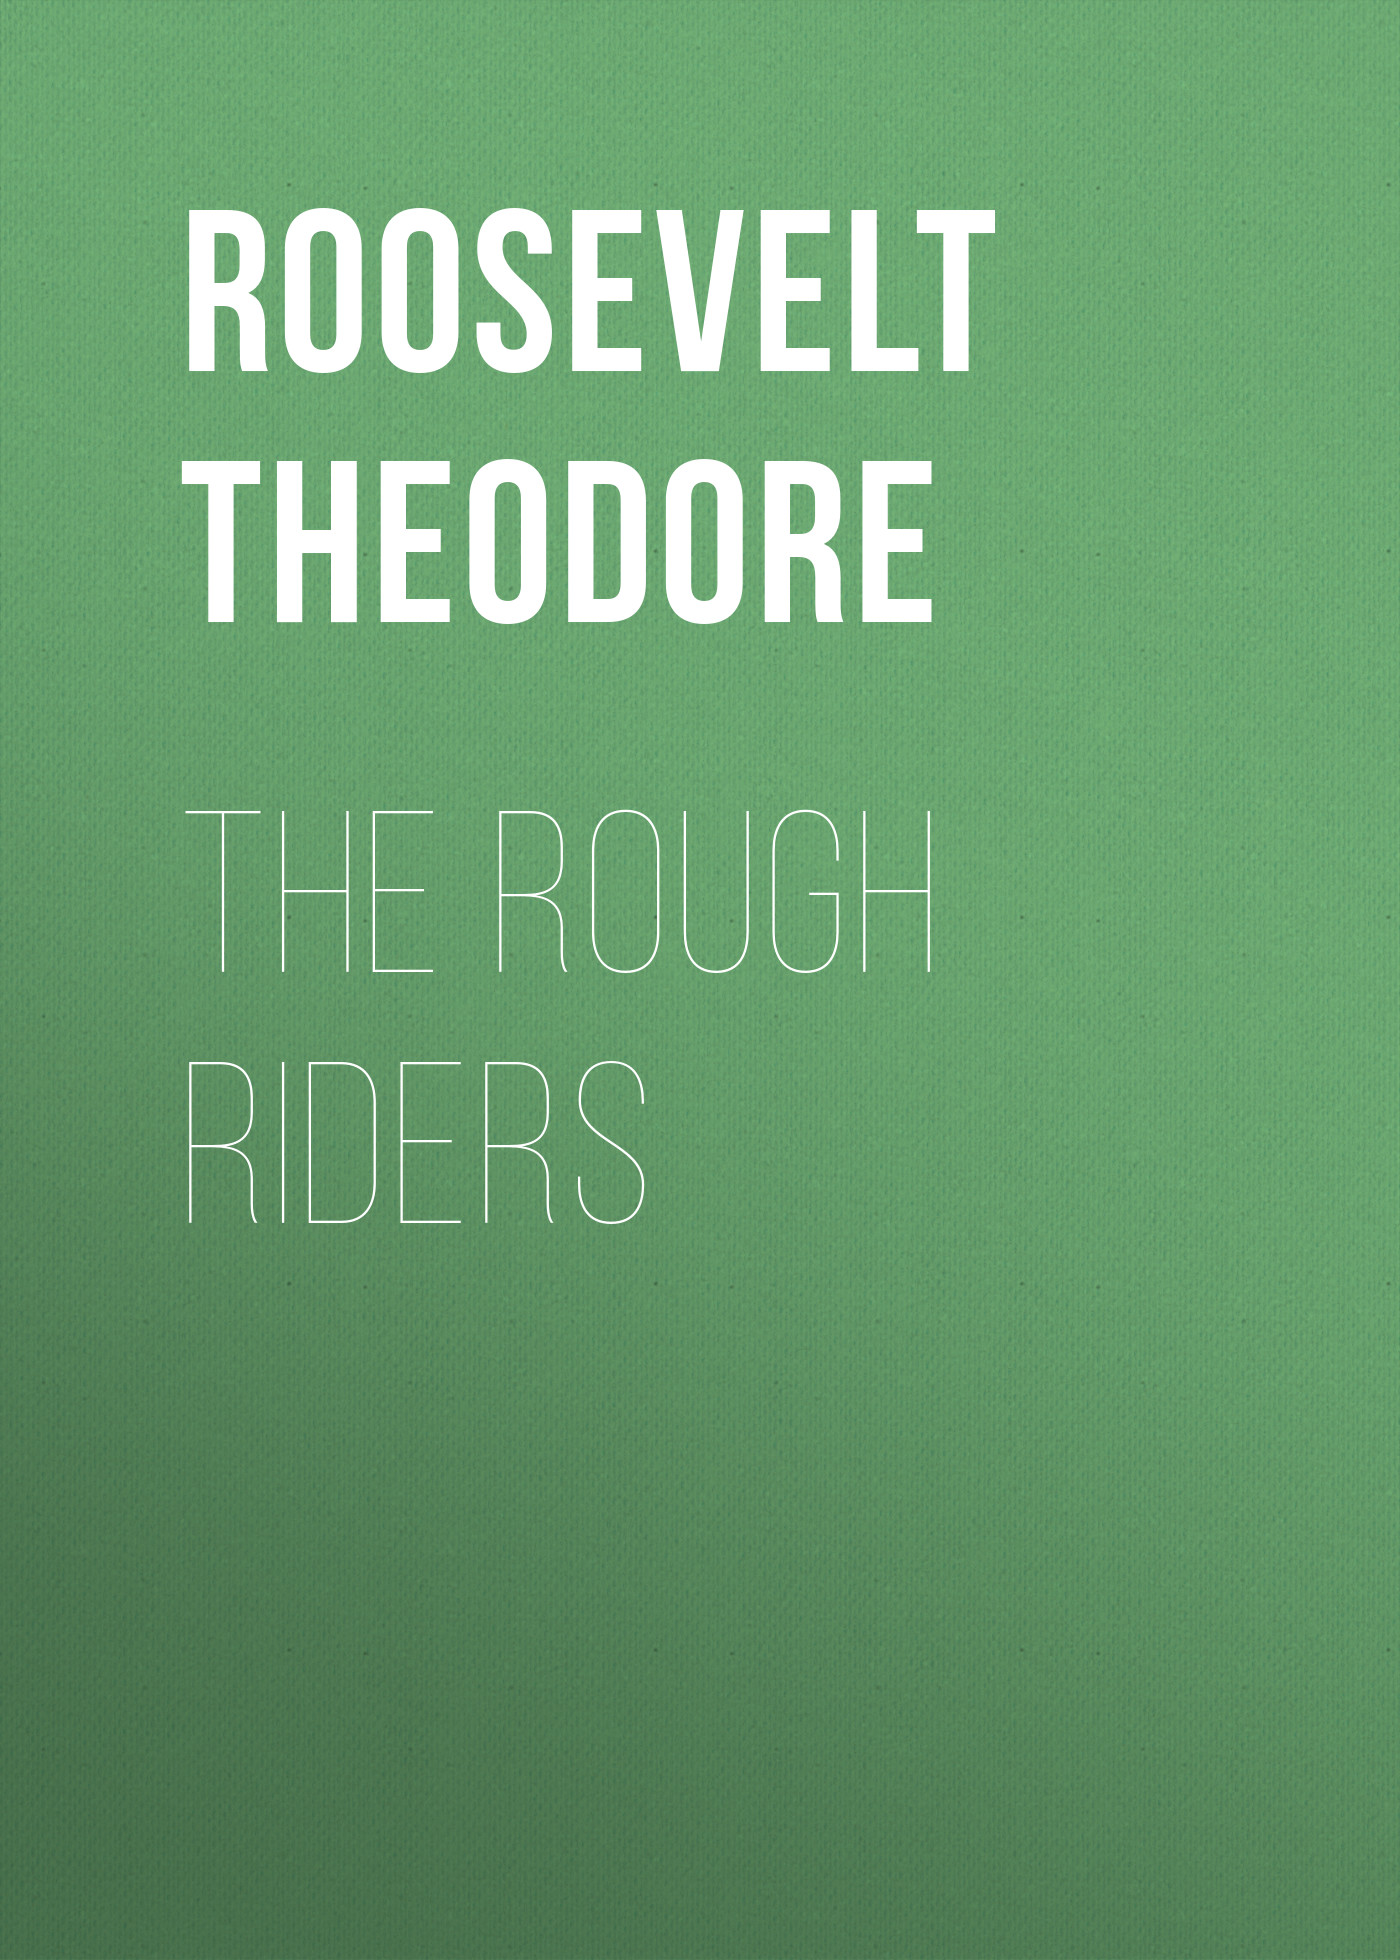 Roosevelt Theodore The Rough Riders my brother theodore roosevelt